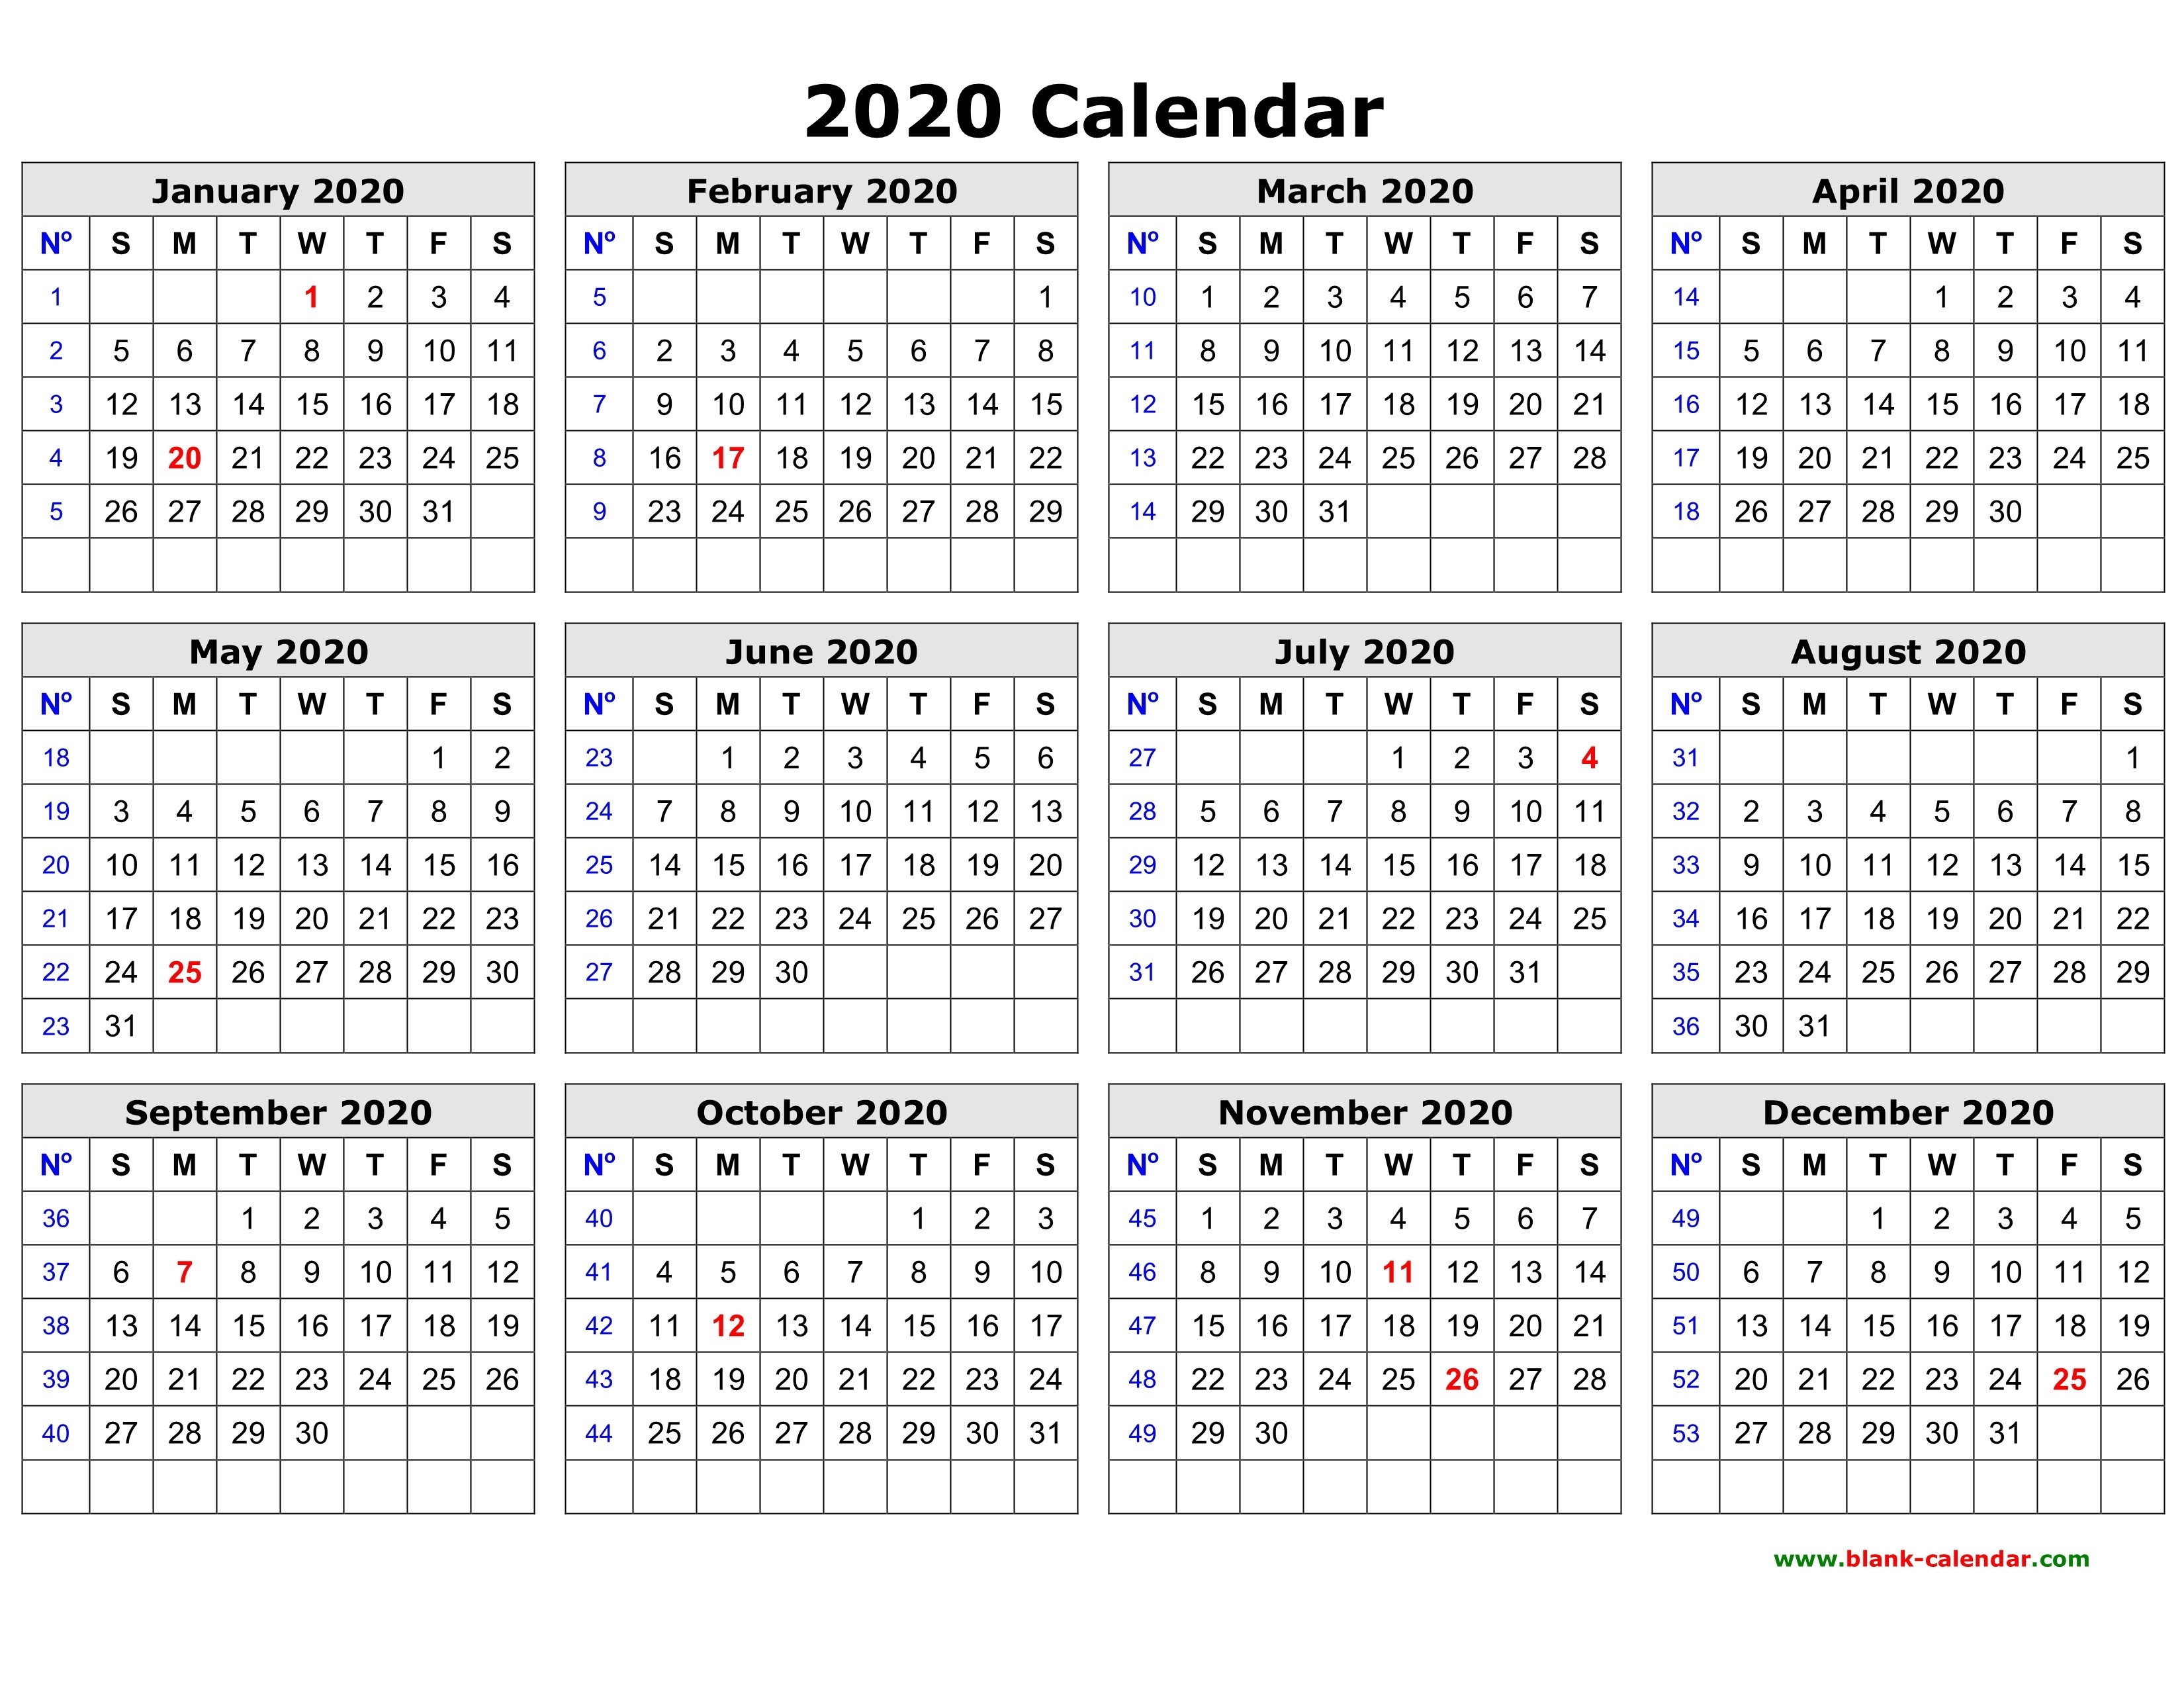 Free Download Printable Calendar 2020 In One Page, Clean Design.-Printable Calendar 2020 Monthly On 2 Pages